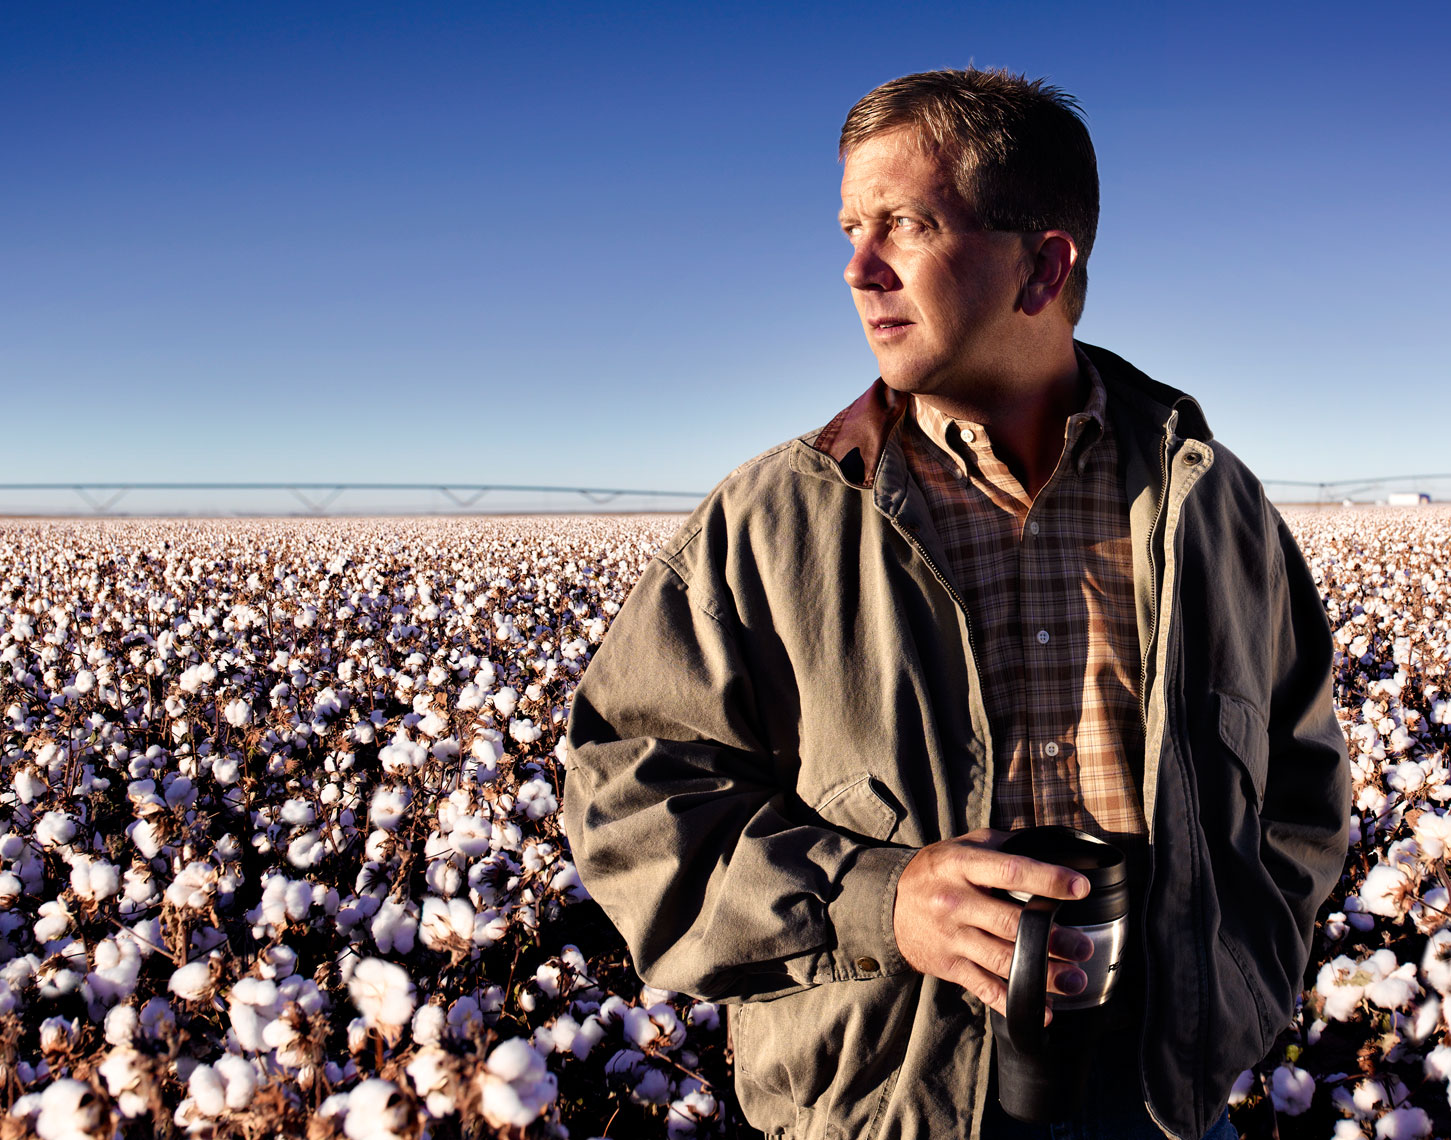 Cotton grower candid portrait at sunrise